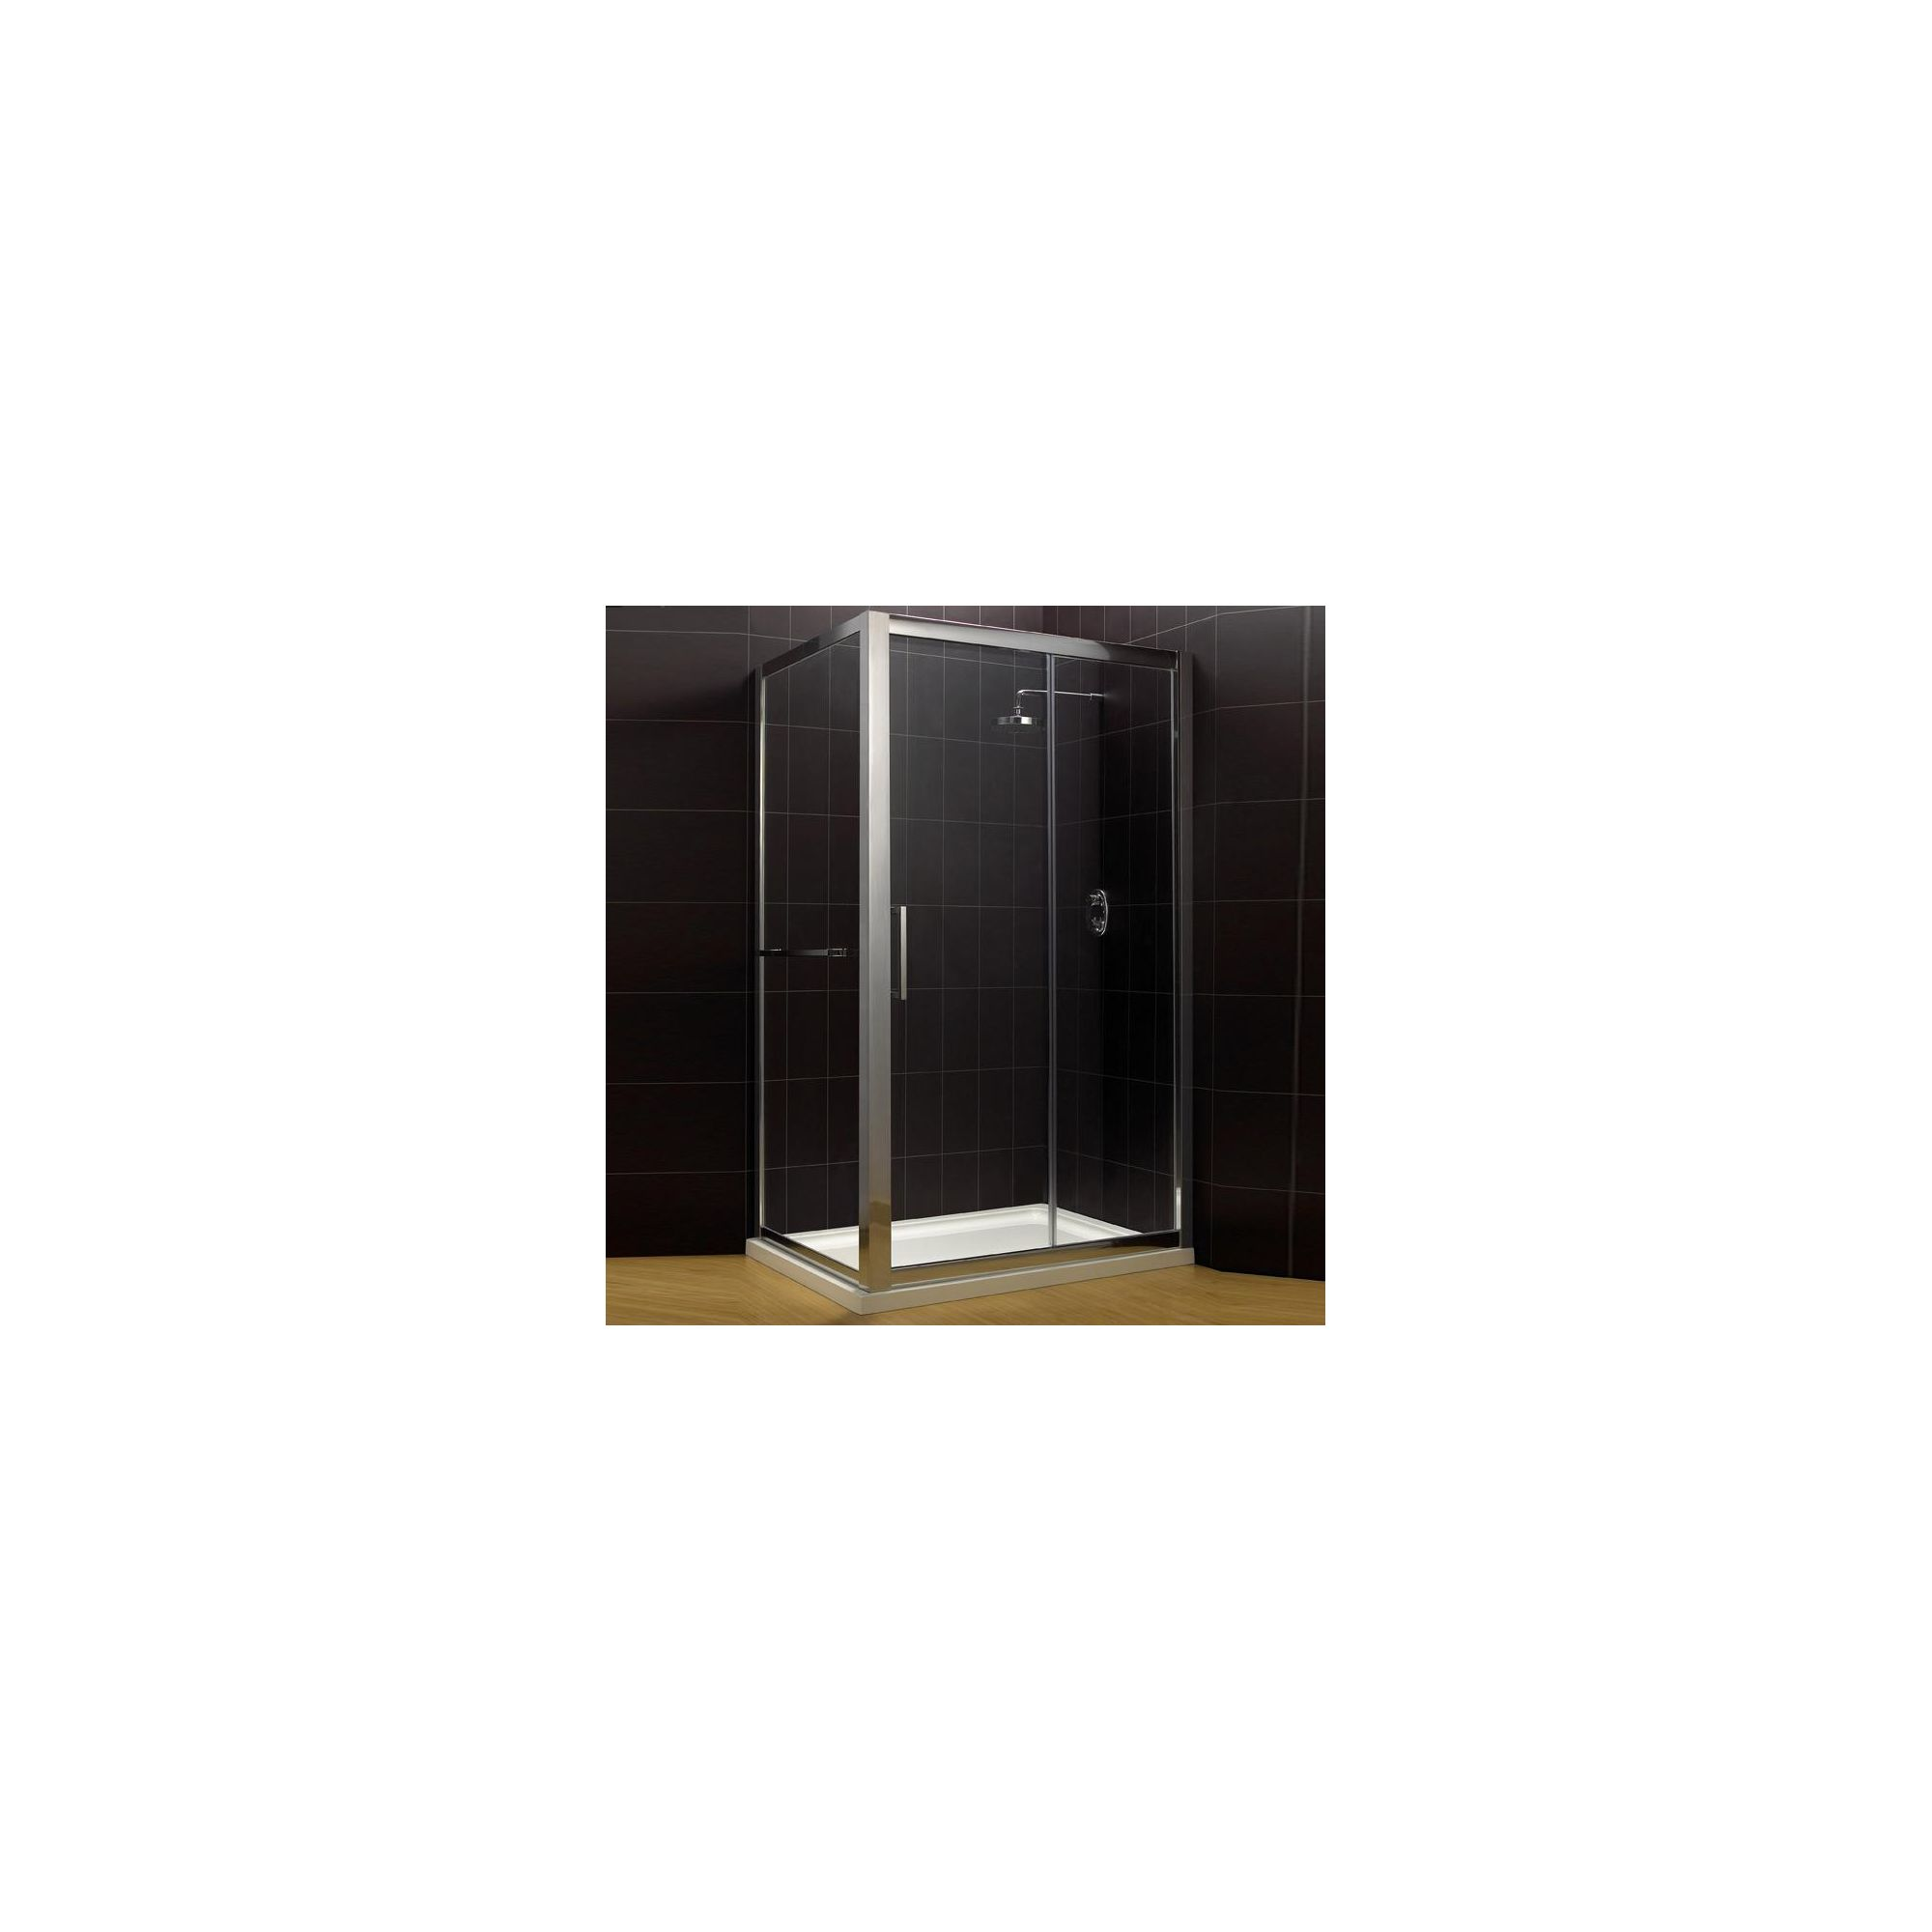 Duchy Supreme Silver Sliding Door Shower Enclosure with Towel Rail, 1700mm x 760mm, Standard Tray, 8mm Glass at Tescos Direct